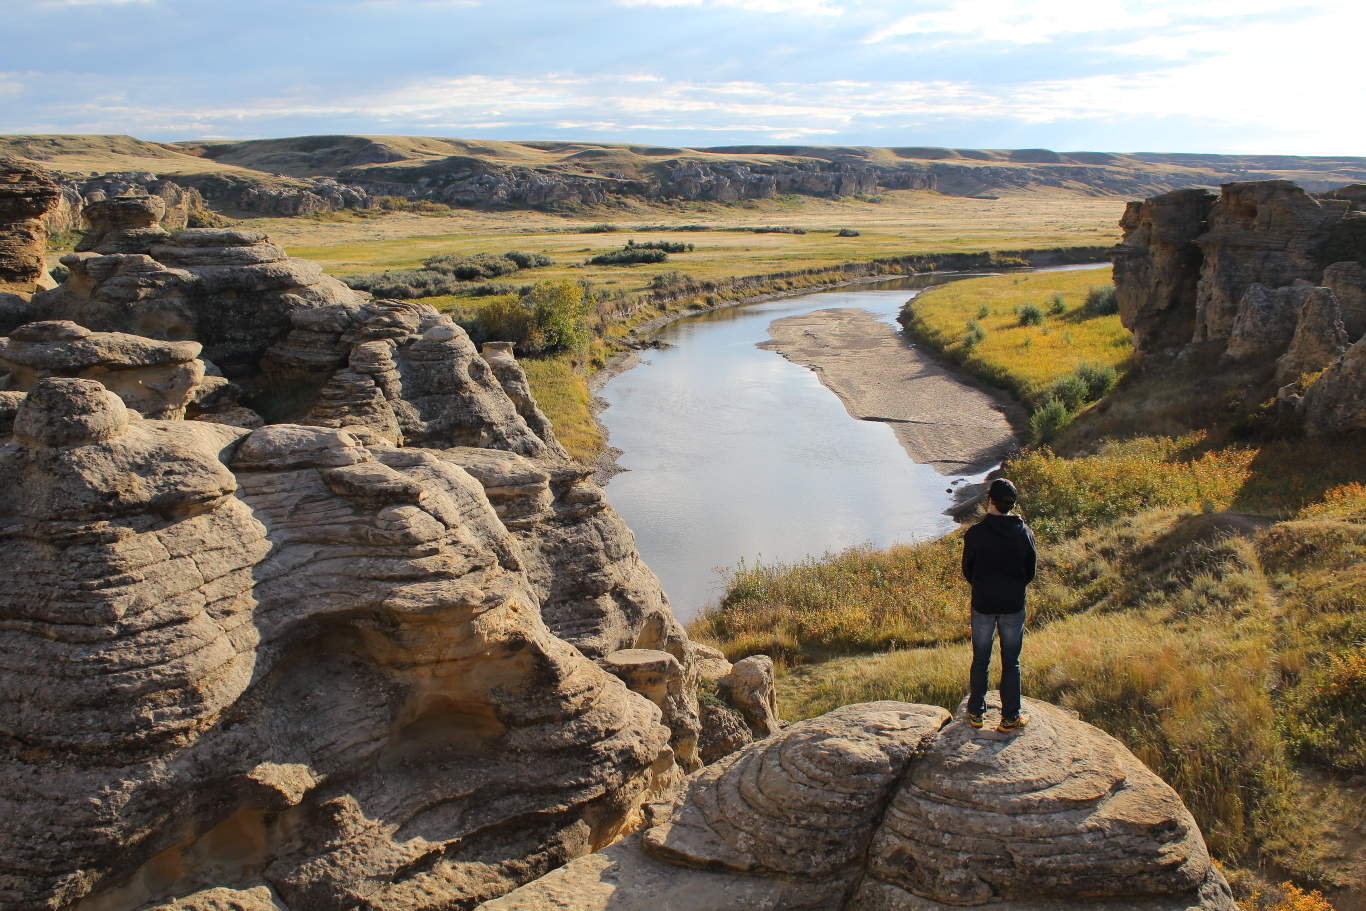 Looking out over the Hoodoo Trail in Writing on Stone Provincial Park